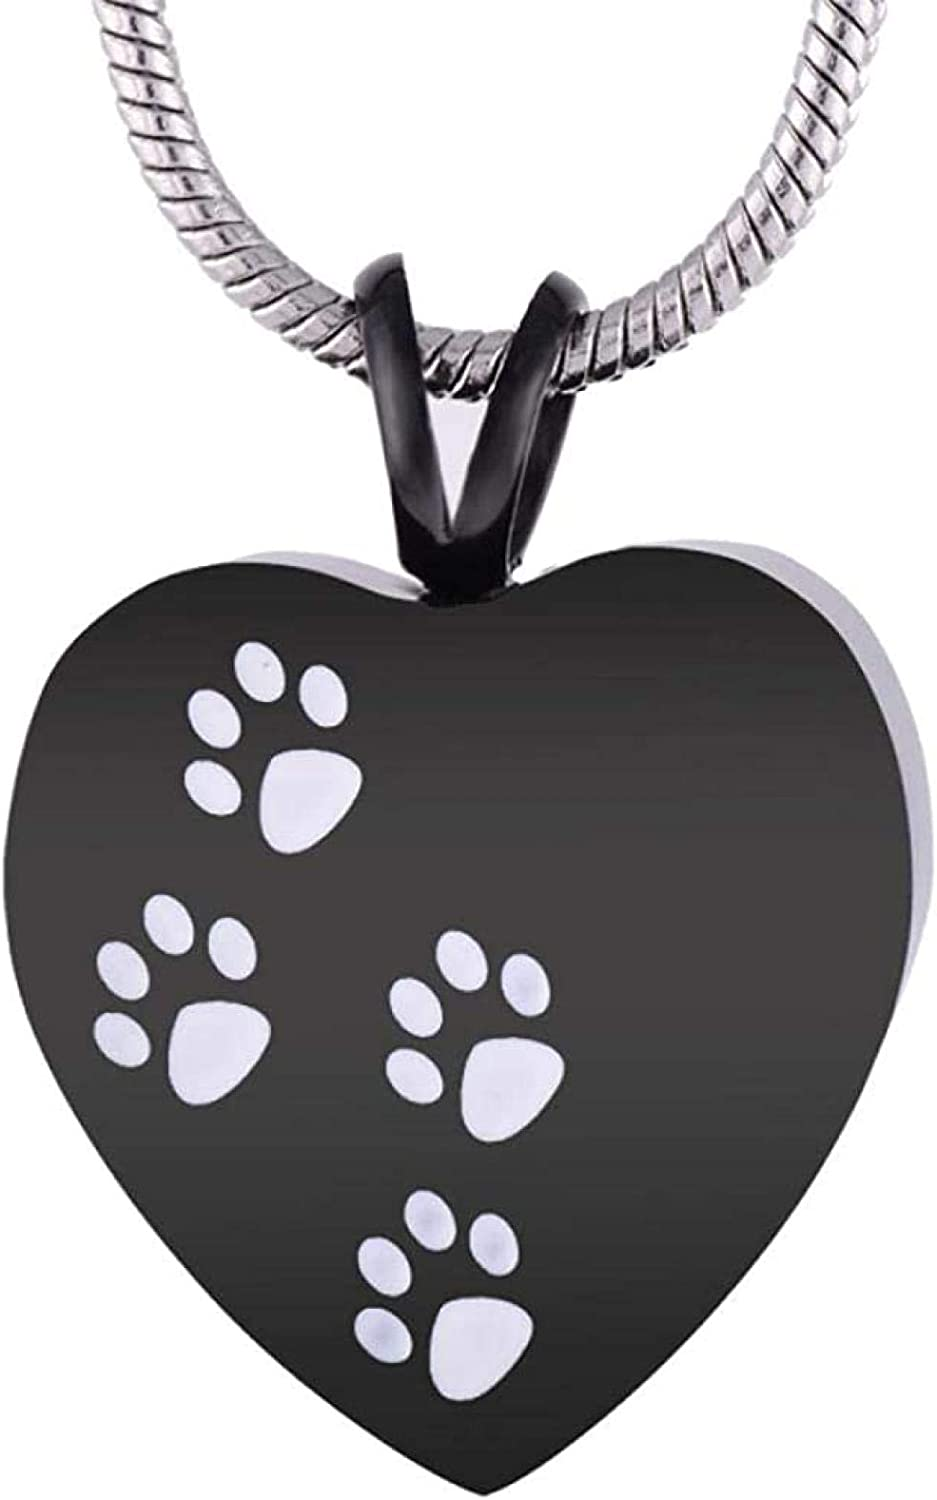 Memorial Jewelry Ashes Urn Necklace Paw Print Engrave Memorial Jewelry Design Memorial Ash Keepsake Pendant Necklace for Pet Dog Cat Ashes Jewelry Ashes Urns Cremation Keepsake Memorial